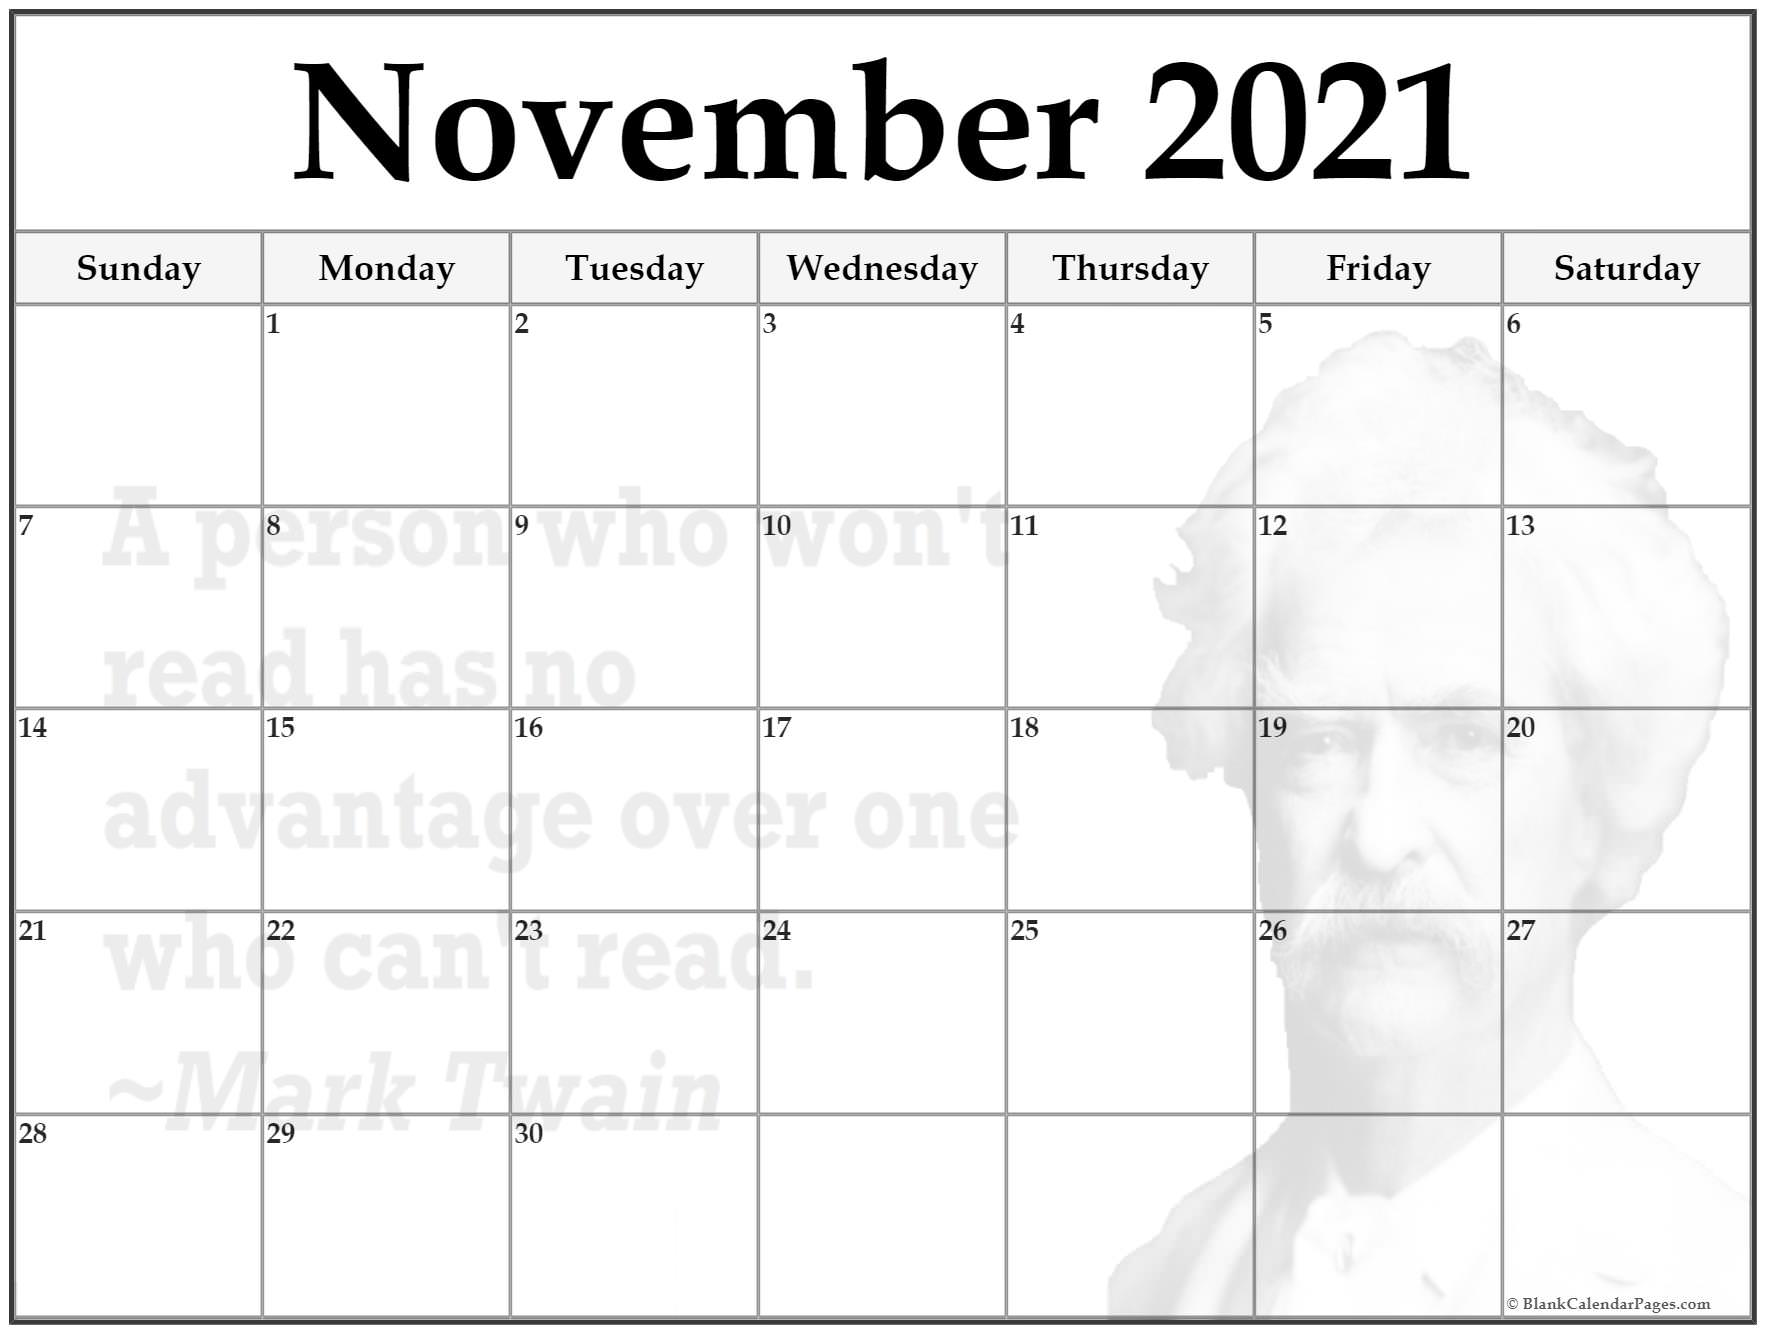 November 2018 printable quote calendar template. A person who won't read has no advantage over a person who can't read. ~Mark Twain